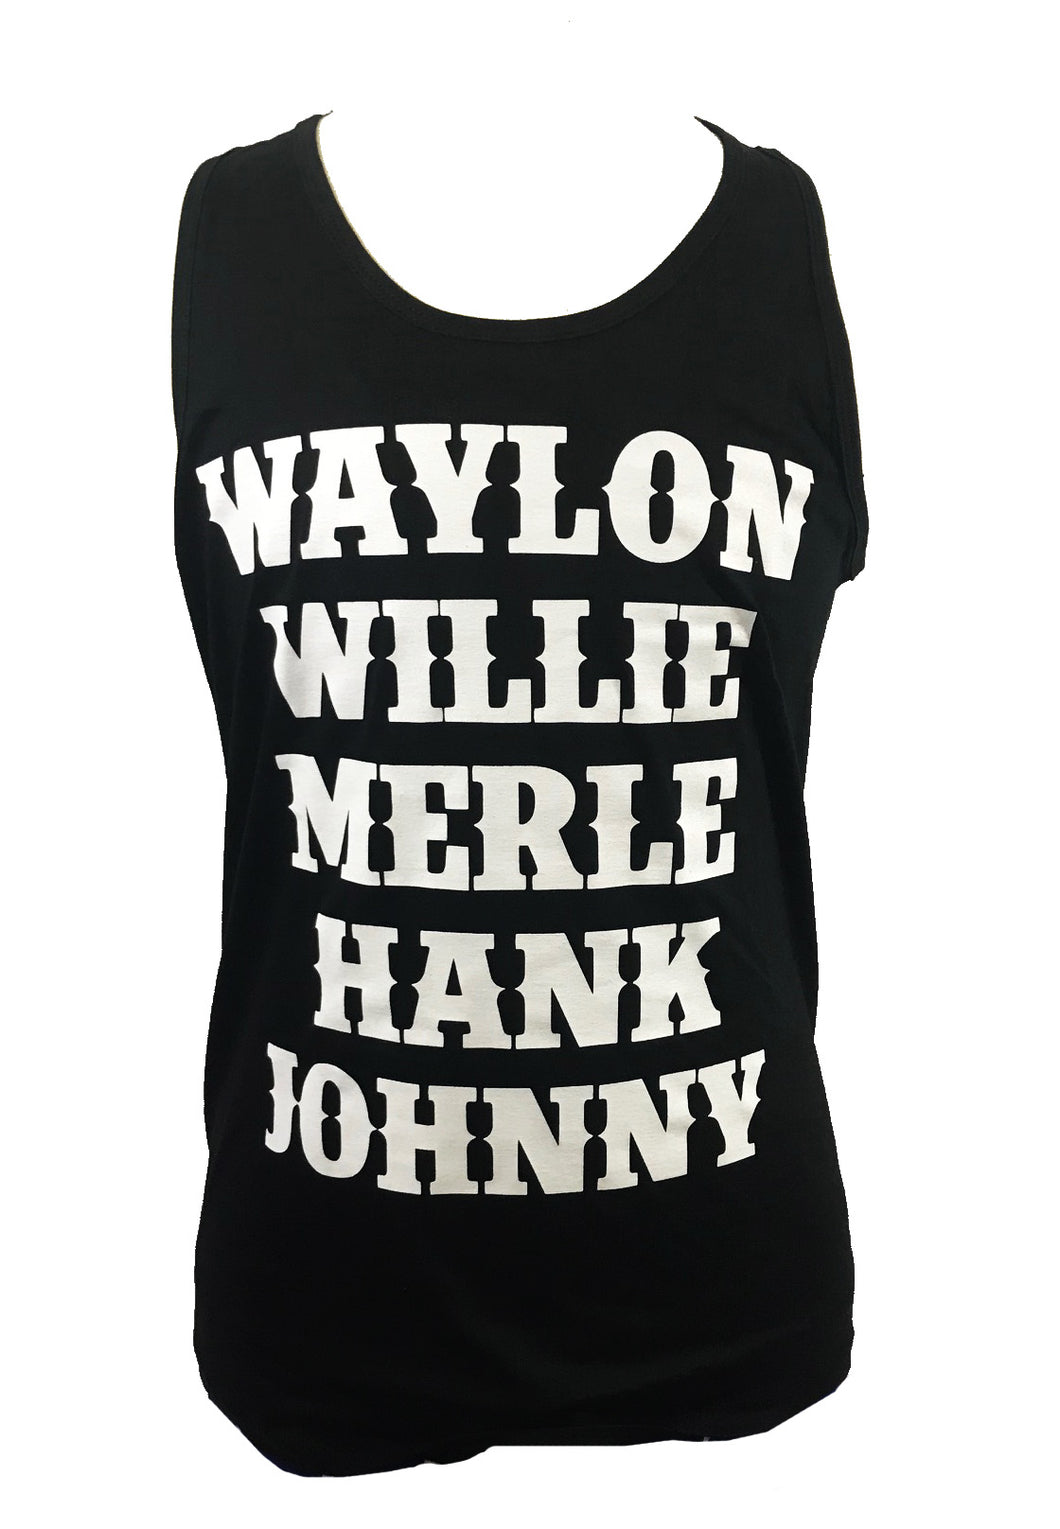 WAYLON WILLIE MERLE HANK JOHNNY MEN'S TANK - Trailsclothing.com